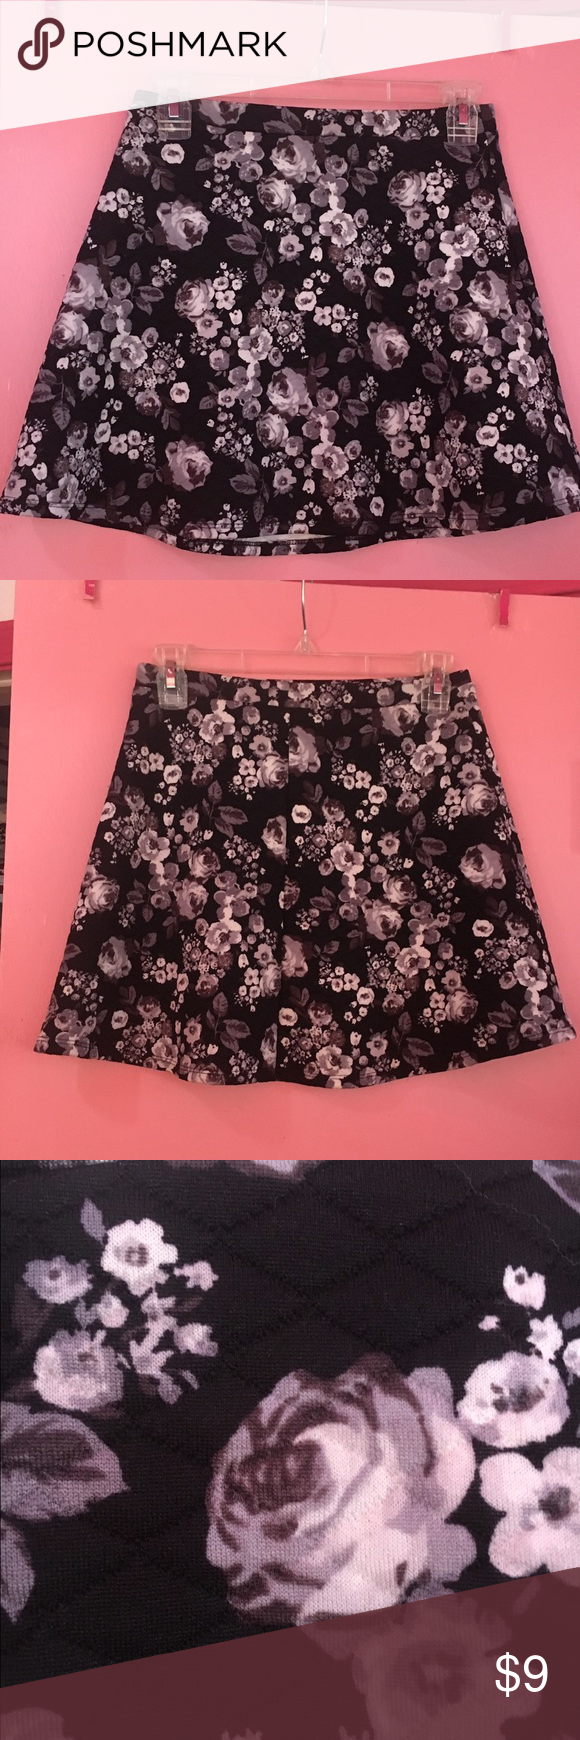 Mini Black Skirt With White Flowers White Flowers